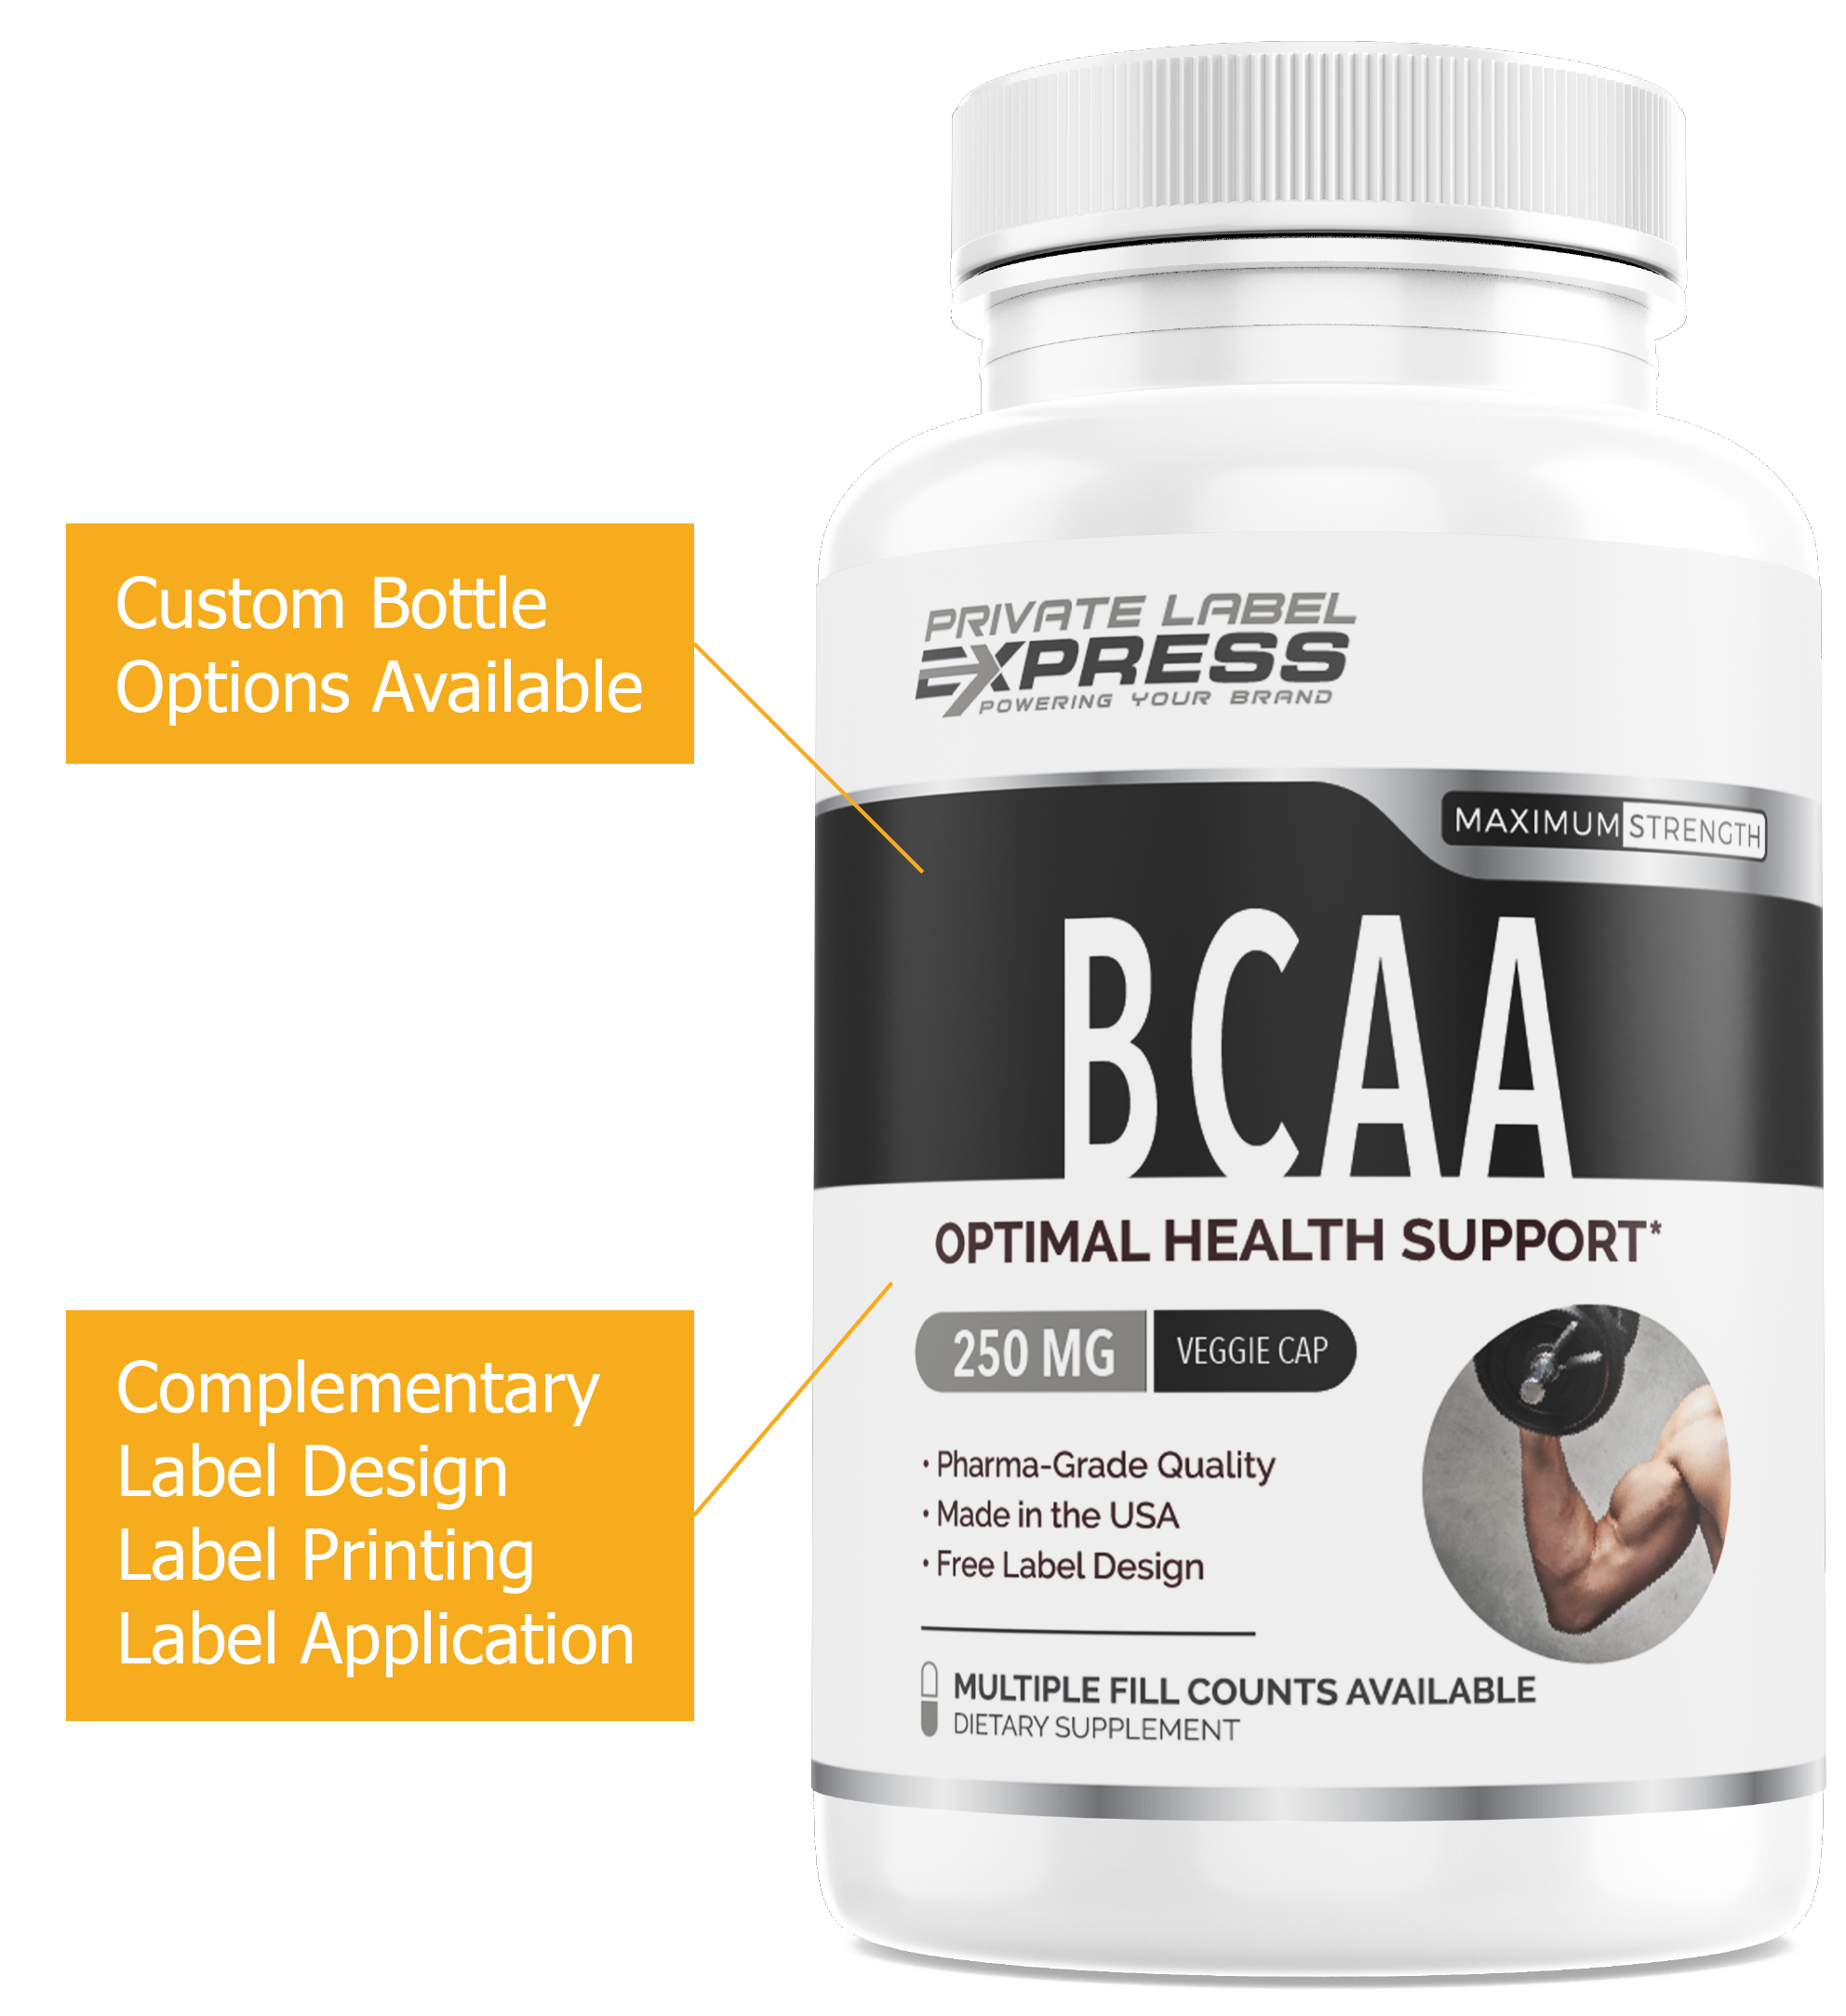 Private Label BCAA Bottle